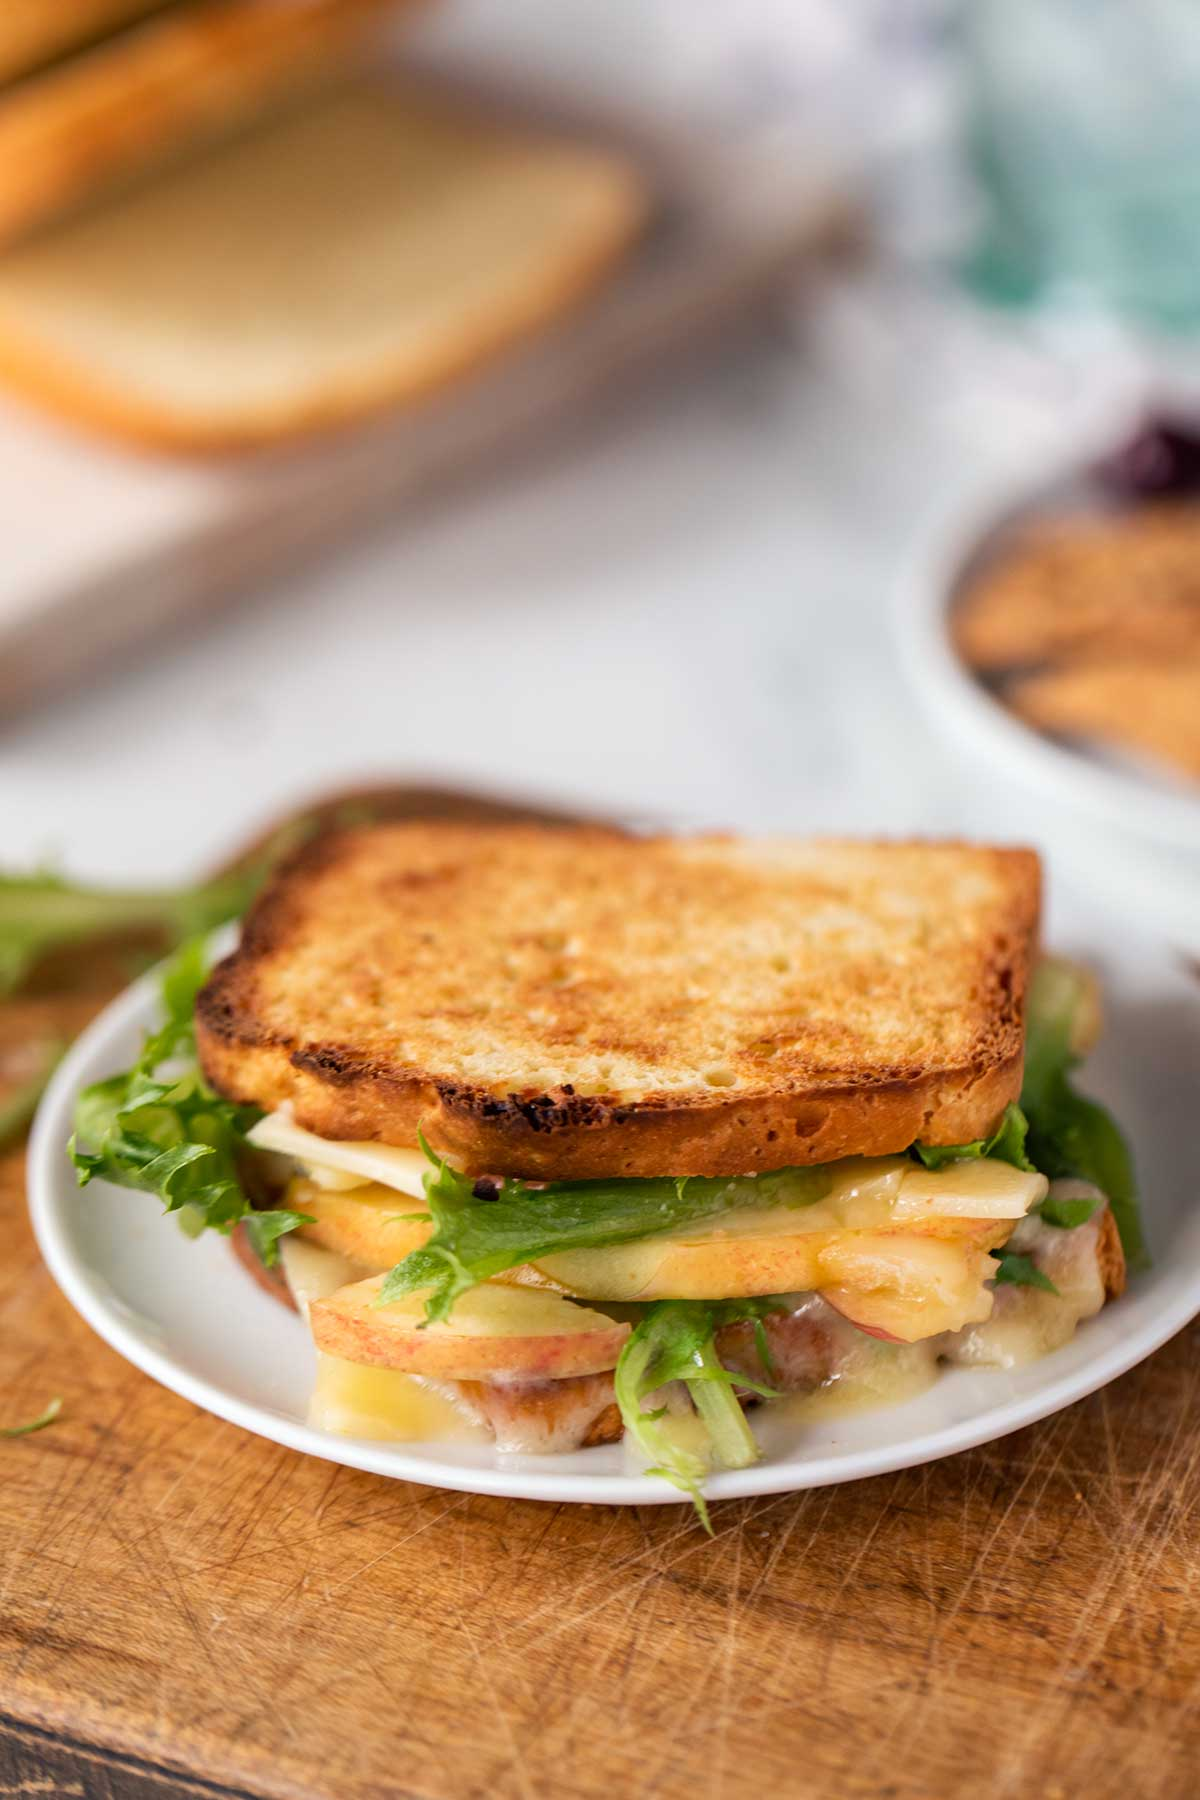 A grilled cheese made with gluten-free bread and garnished with slices of apples and greens